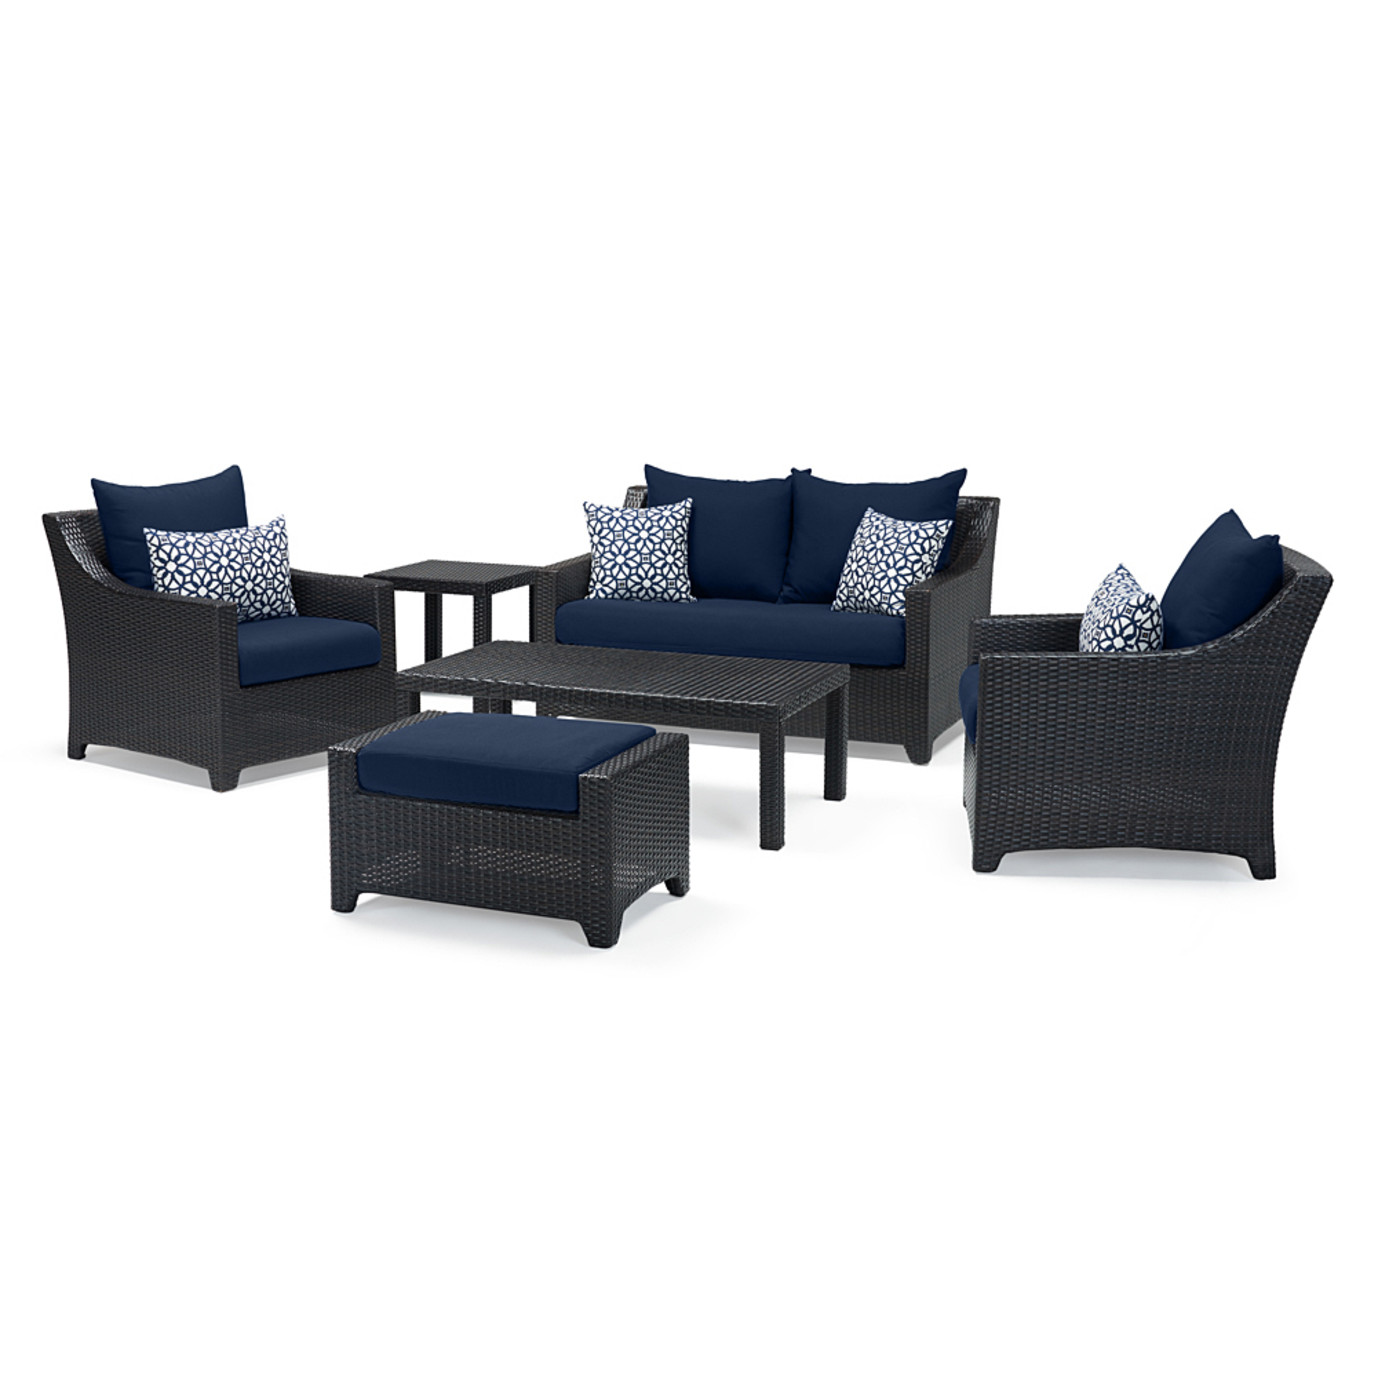 Deco™ 6 Piece Love and Club Seating Set - Navy Blue